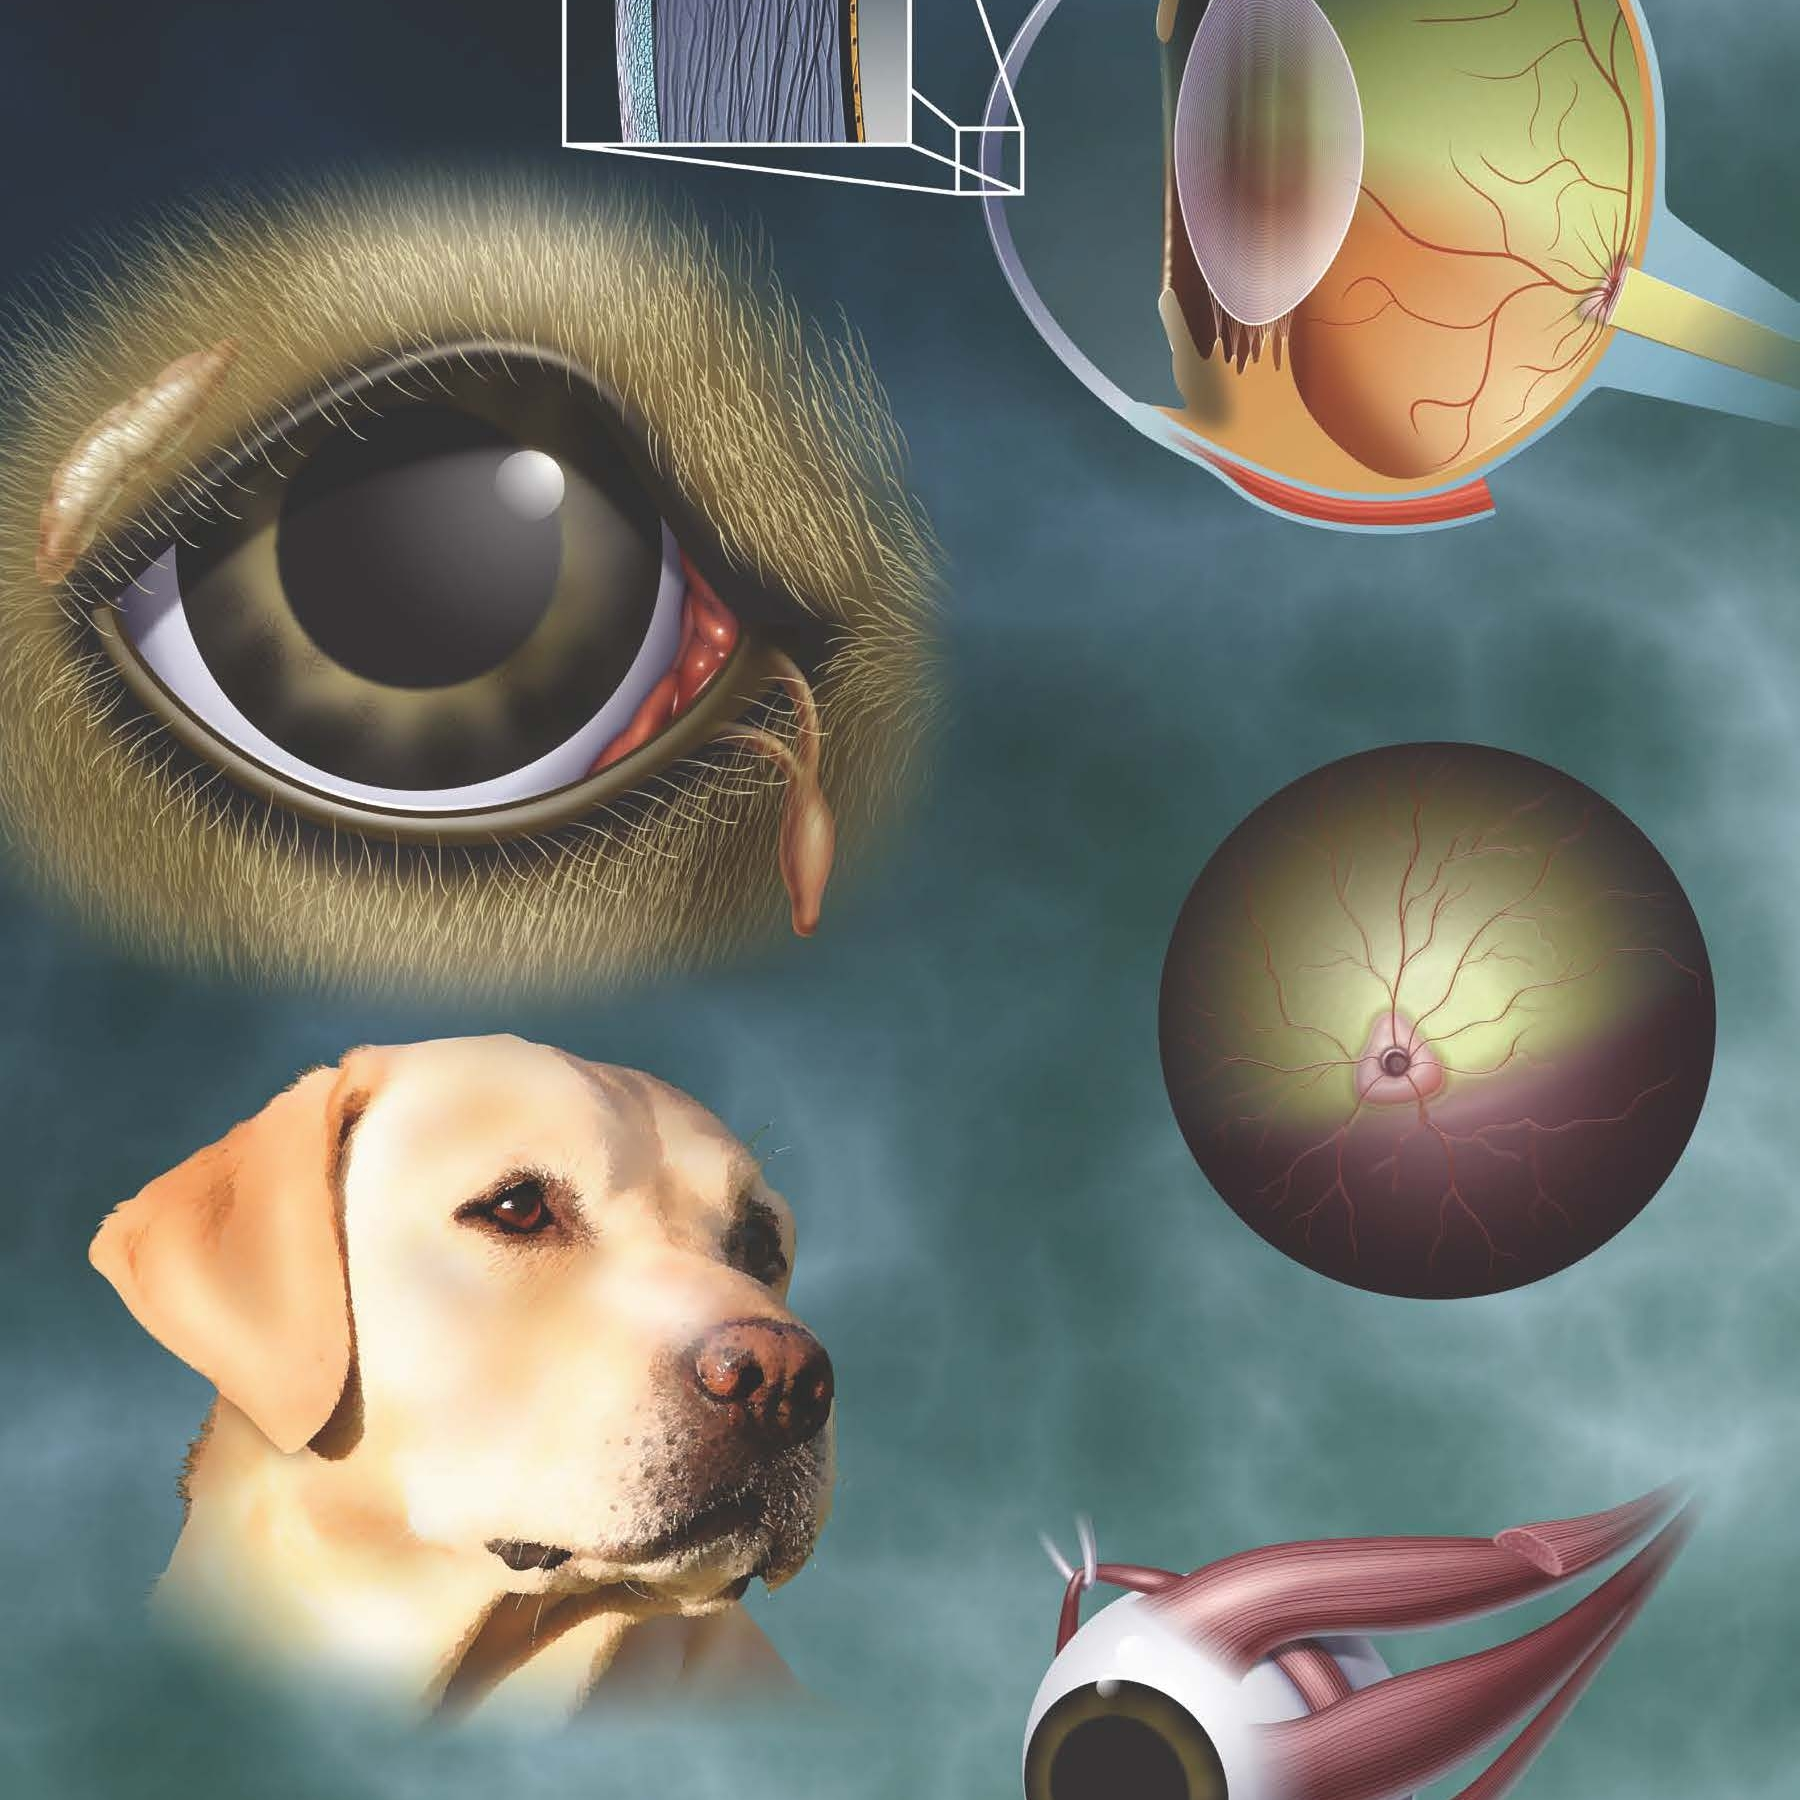 Canine Eye Anatomy Posters - Full size posters for clinic offices. Also available as small or large notepads (members only).